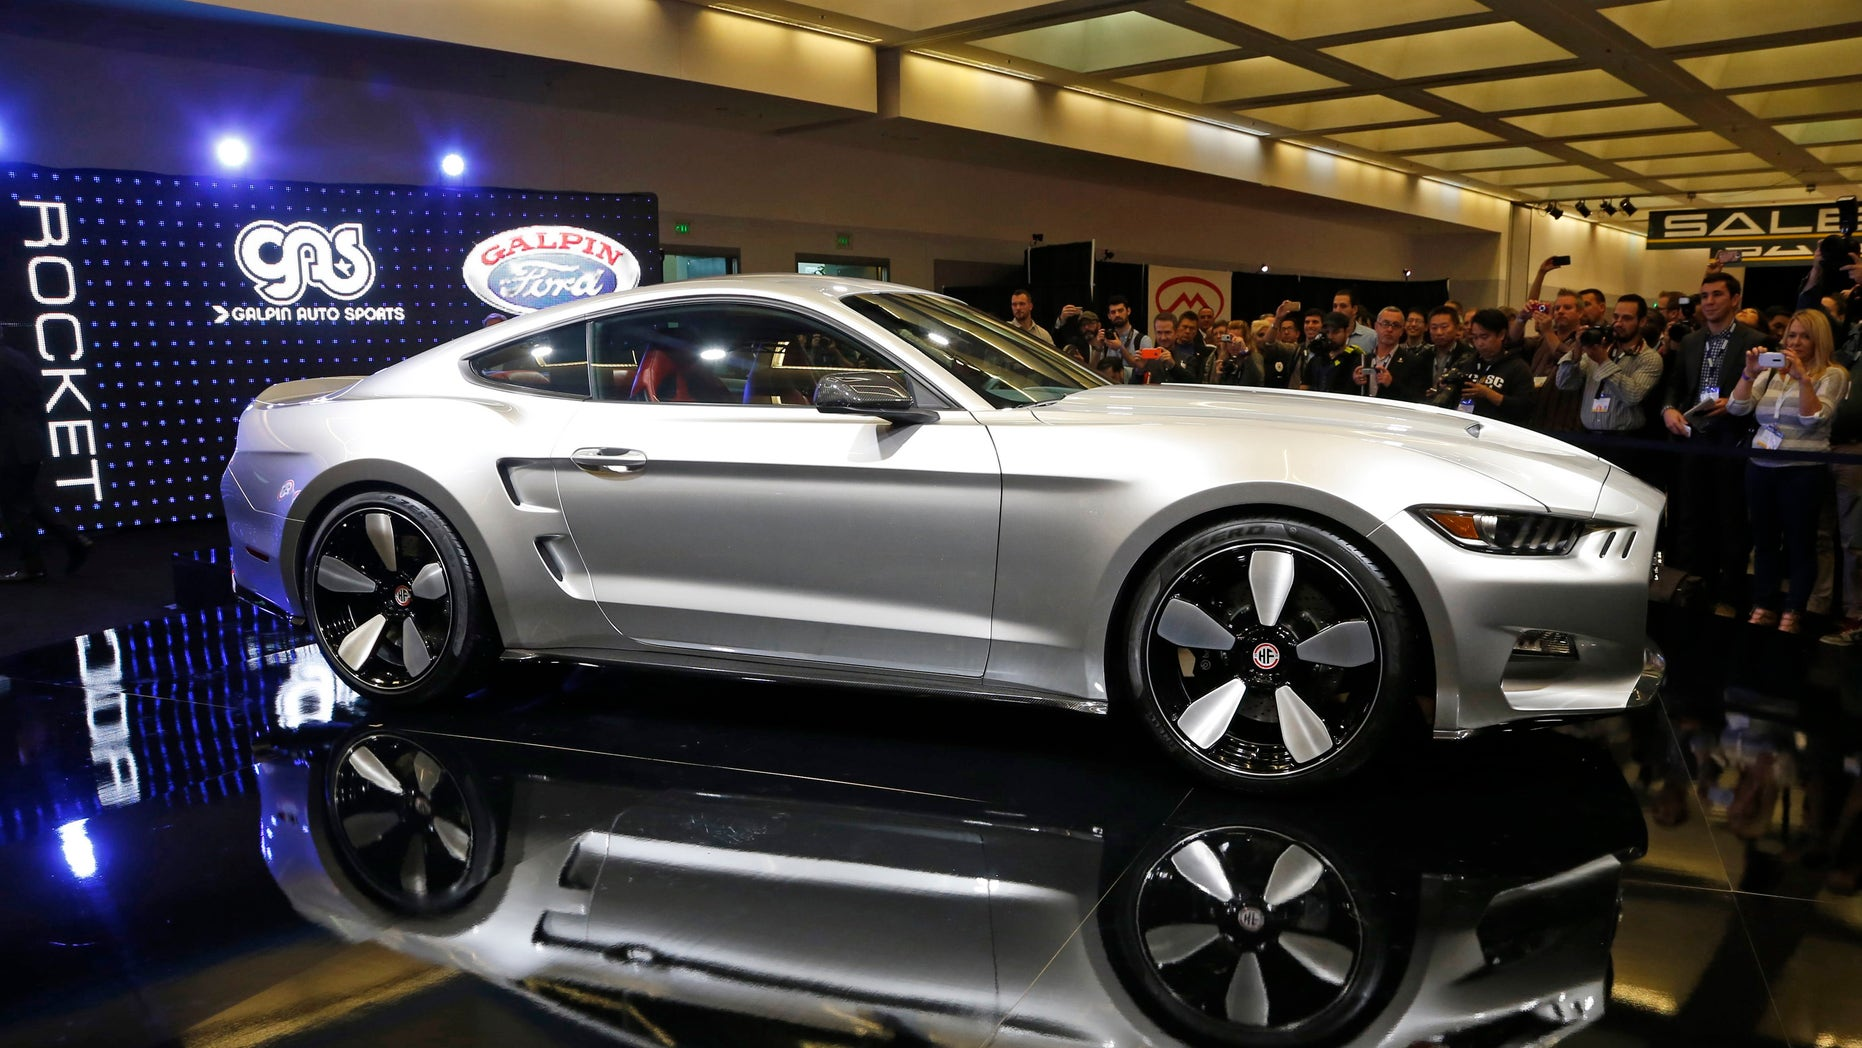 A 2015 Ford Mustang from Denmark's Henrik Fisker and California tuning company Galpin Auto Sports called 'Rocket' is unveiled at its world premiere at the Los Angeles Auto Show in Los Angeles, California November 20.